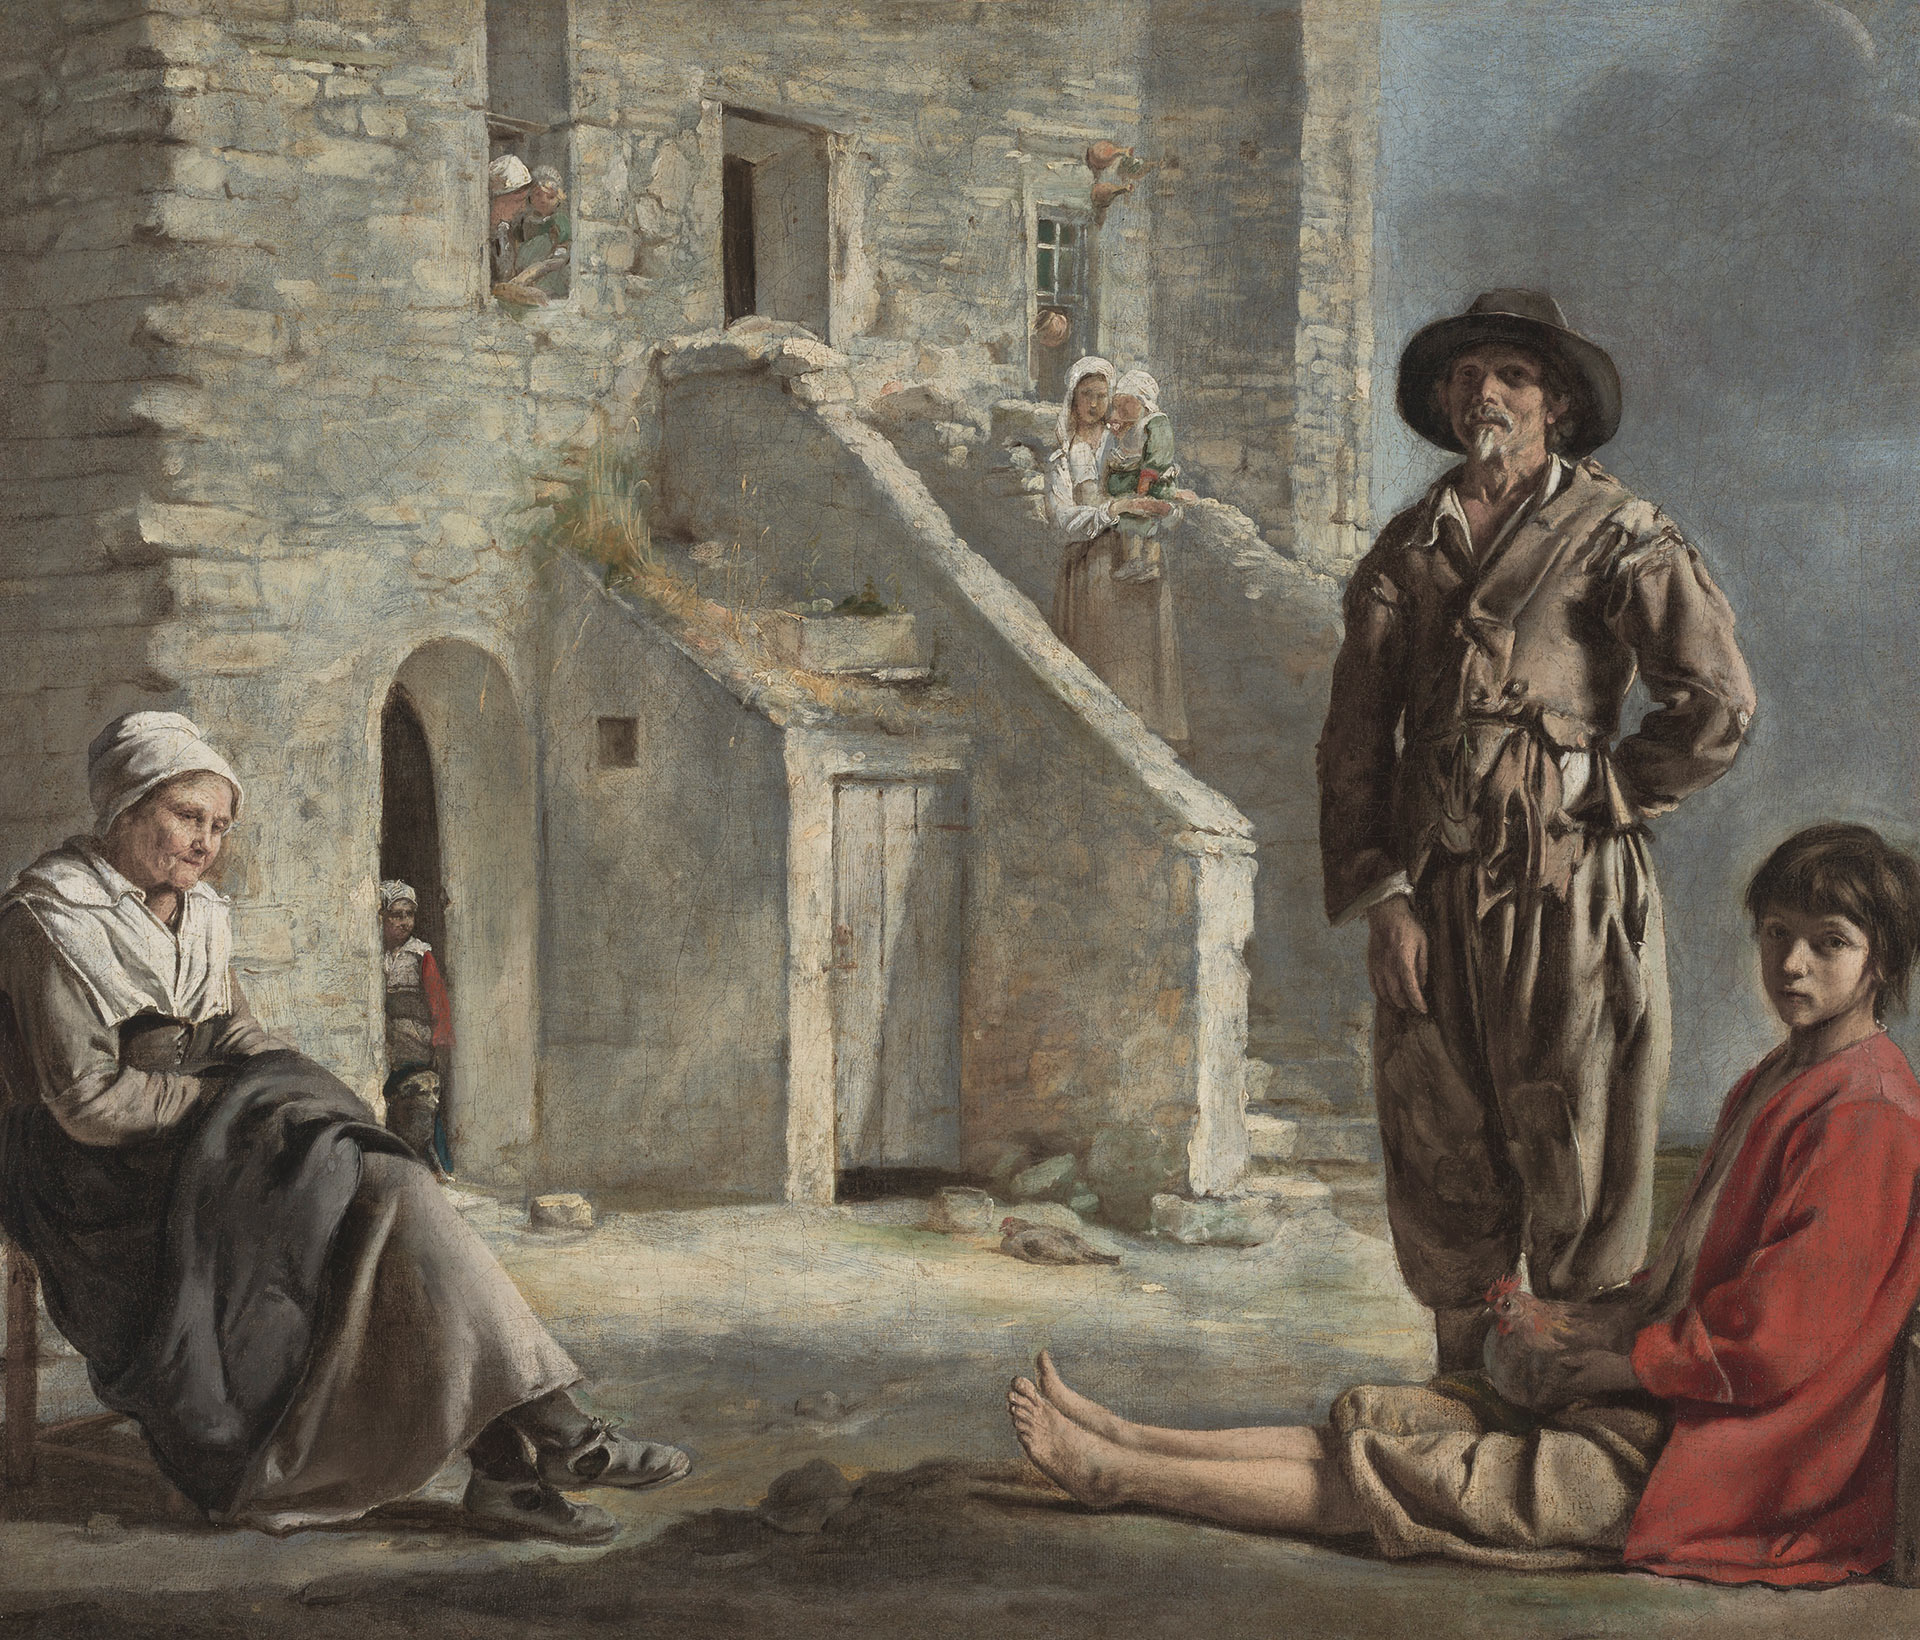 Louis Le Nain, Peasants before a House, ca. 1640